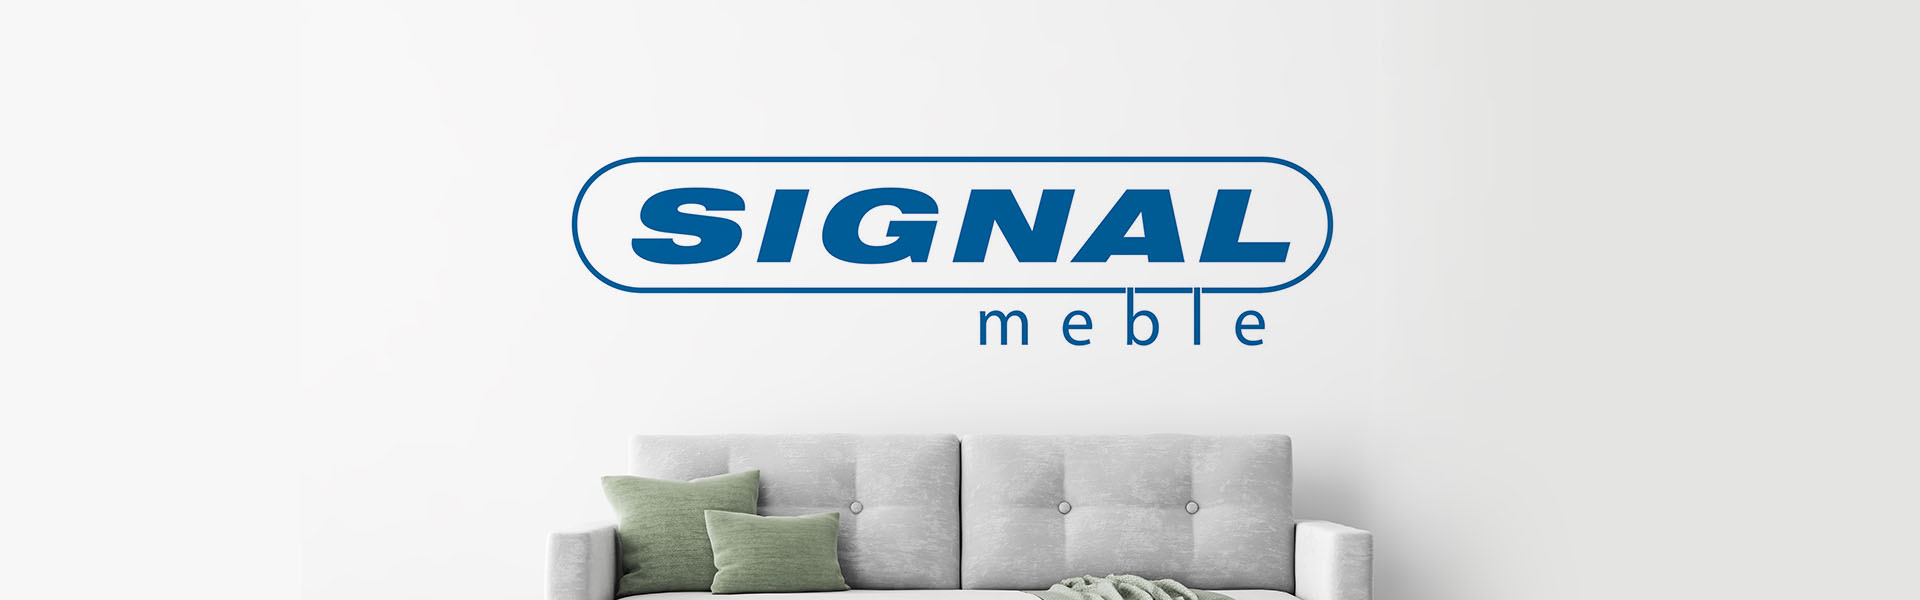 Konsool Escada C, kuldne                             Signal Meble